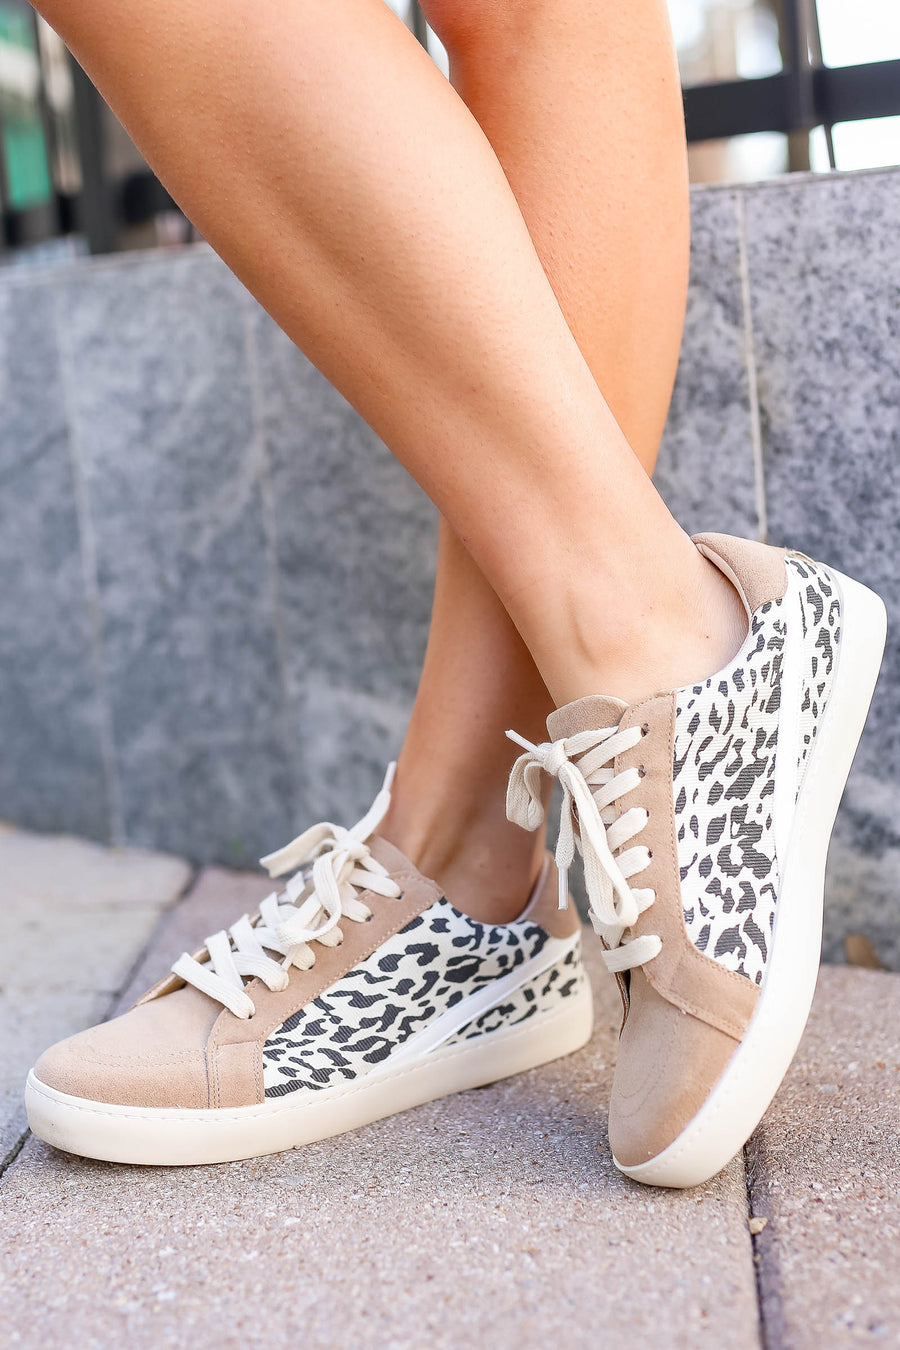 She's Got Hustle Leopard Sneakers - Khaki closet candy women's trendy leopard canvas and vegan suede sneakers 1